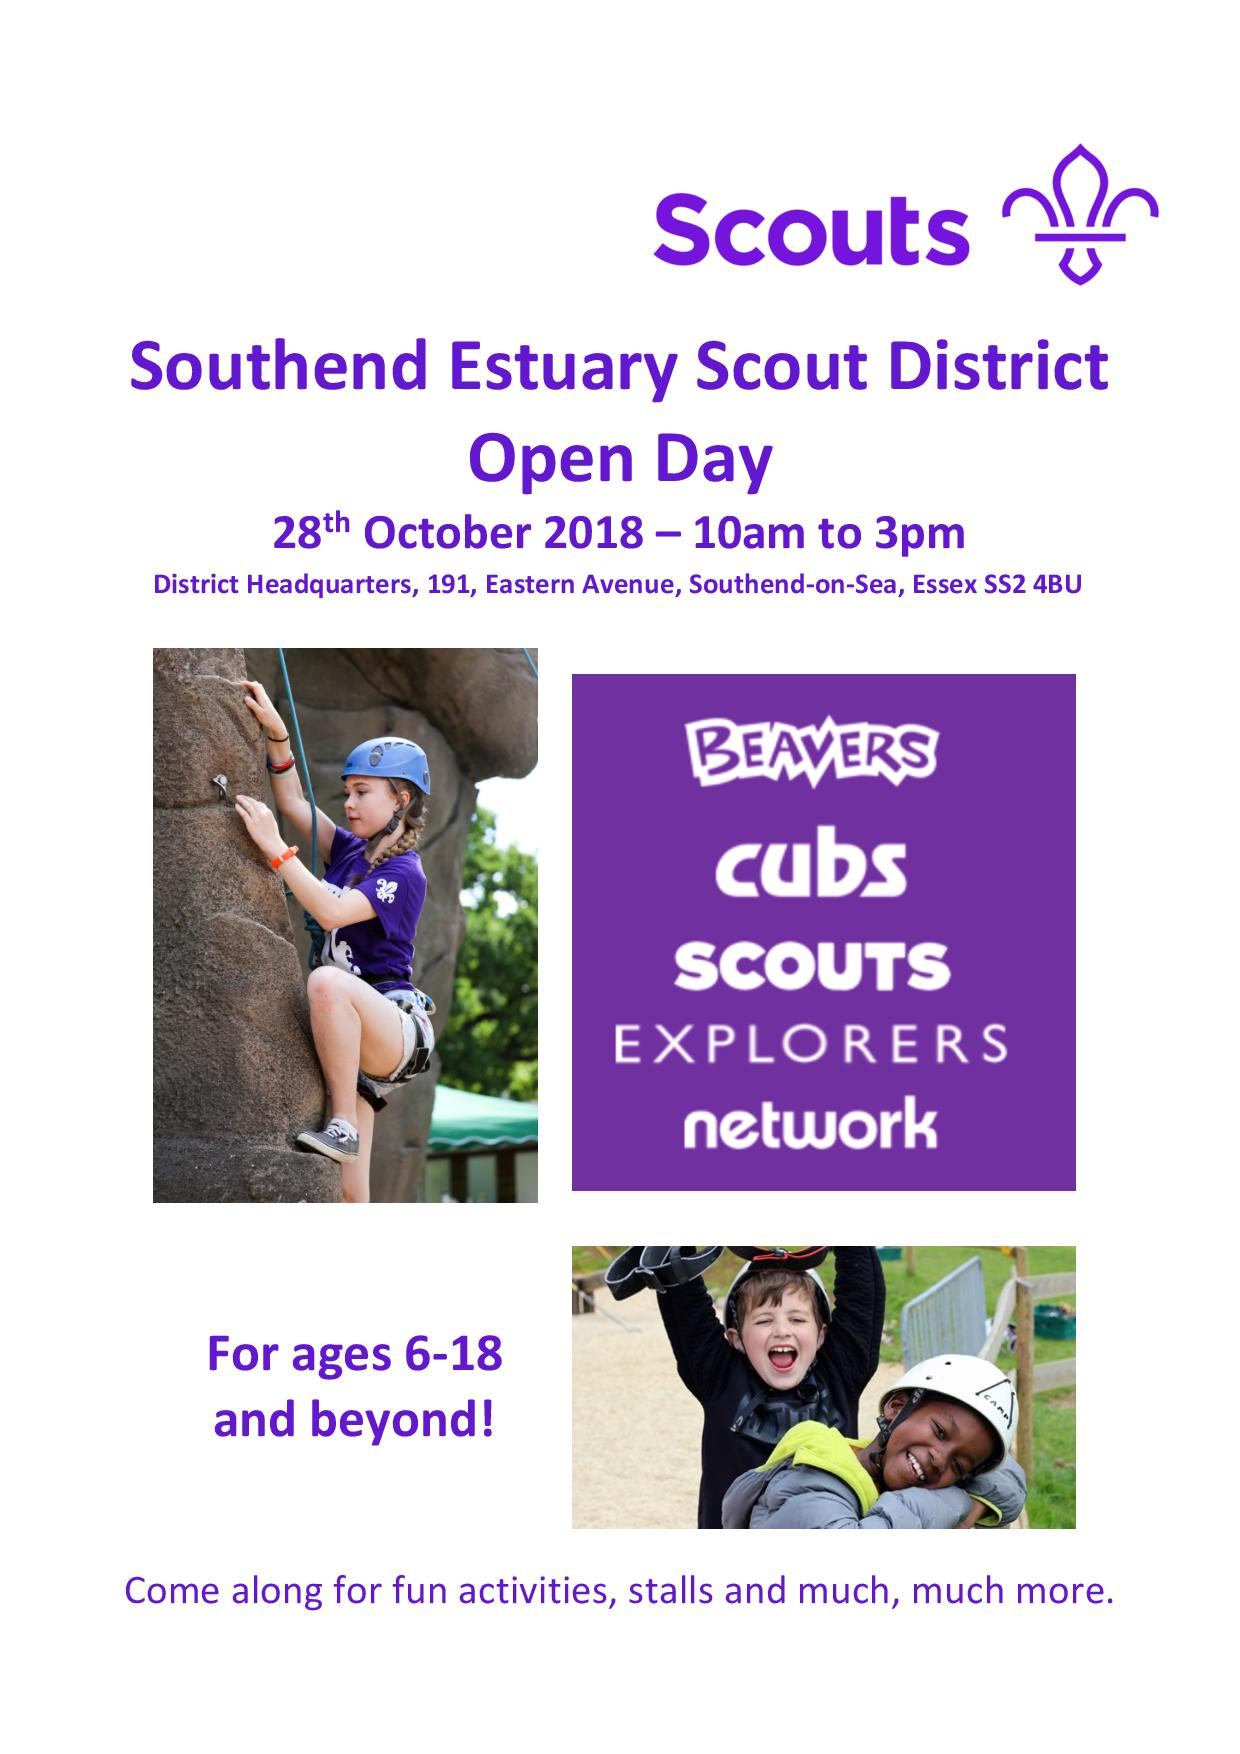 Southend Estuary District Scout Open Day